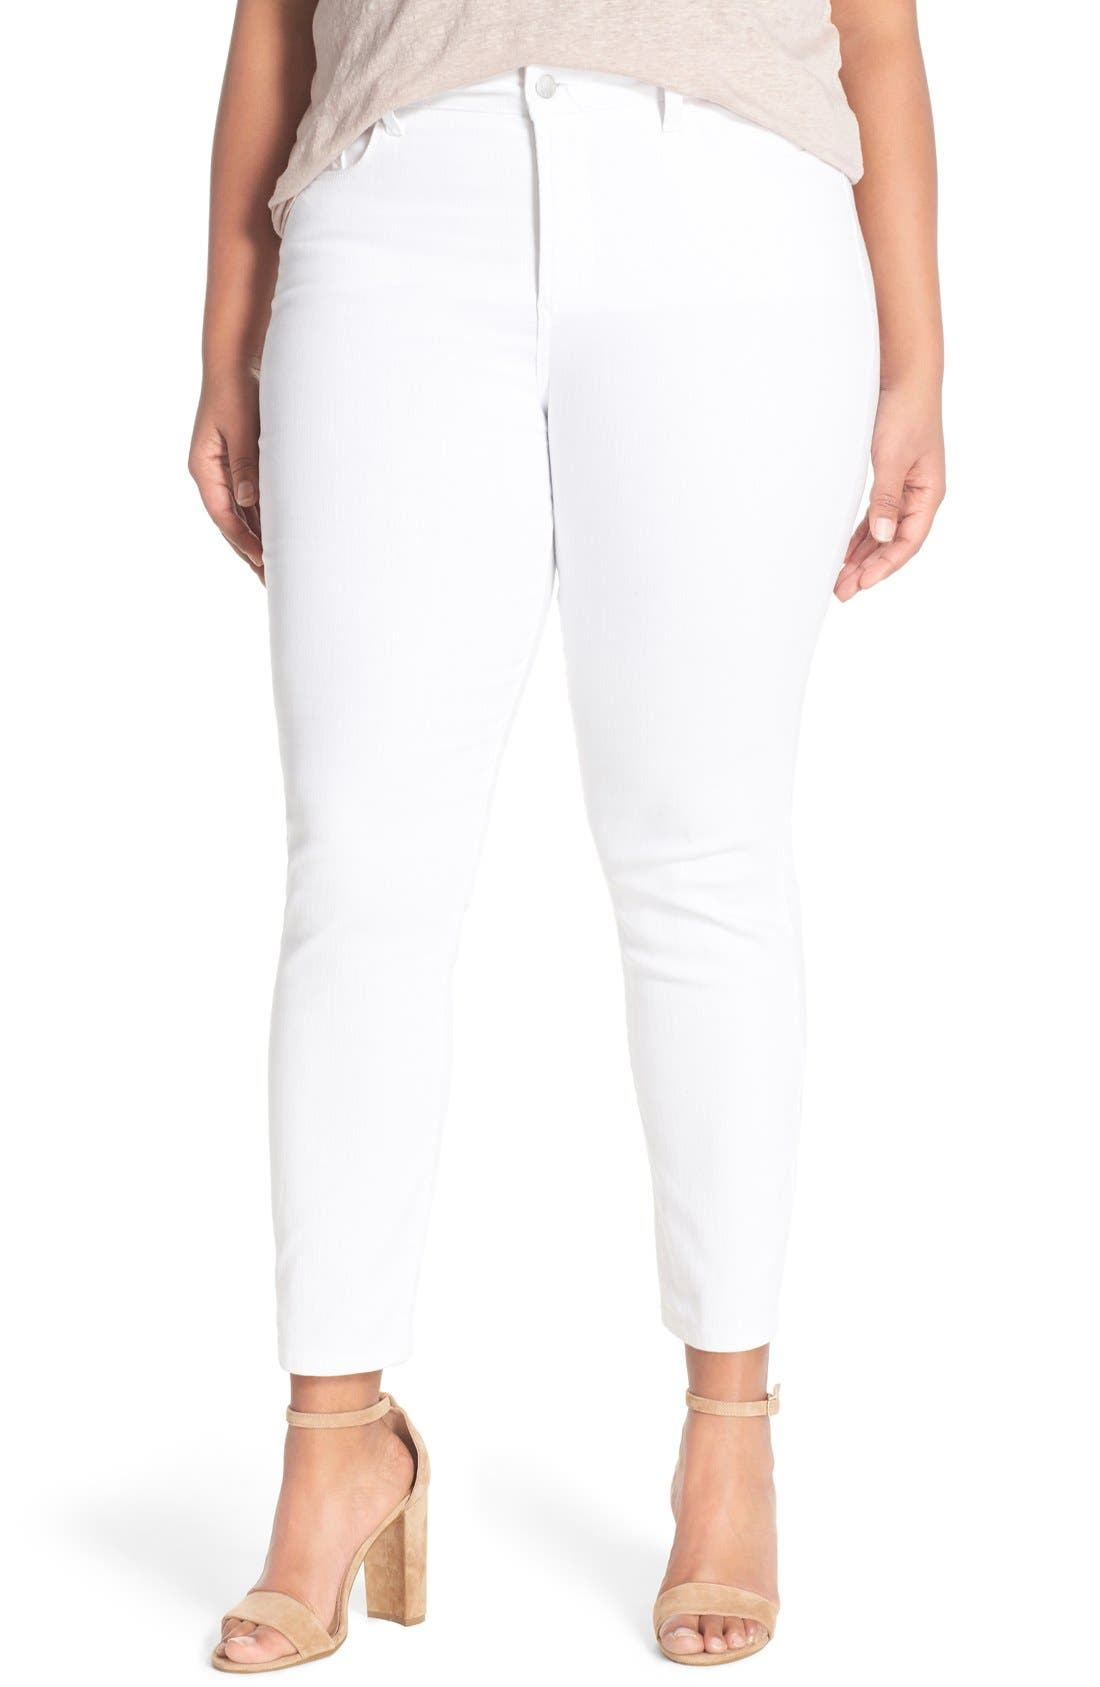 Alternate Image 1 Selected - NYDJ 'Clarissa' Stretch Slim Ankle Jeans (Plus Size)